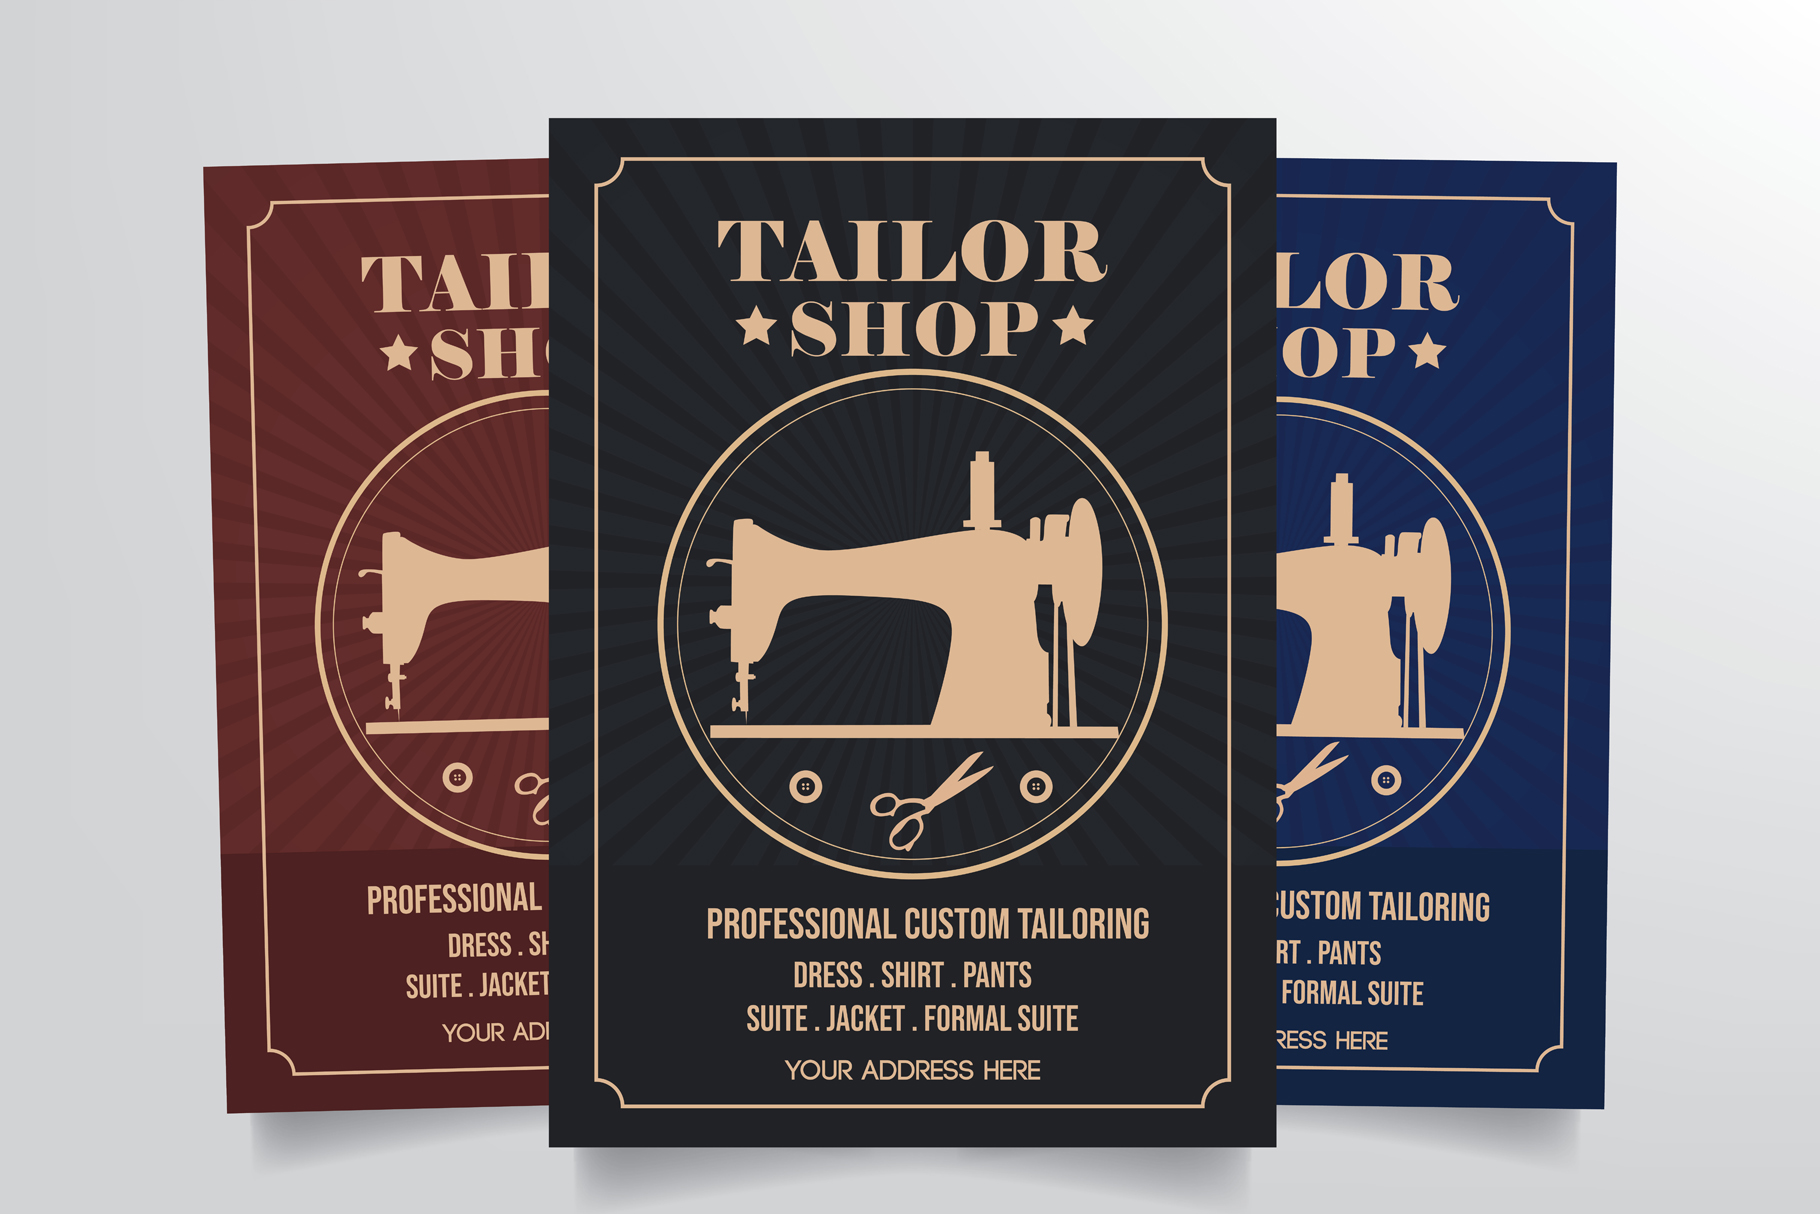 Tailor Shop Flyer Template example image 1